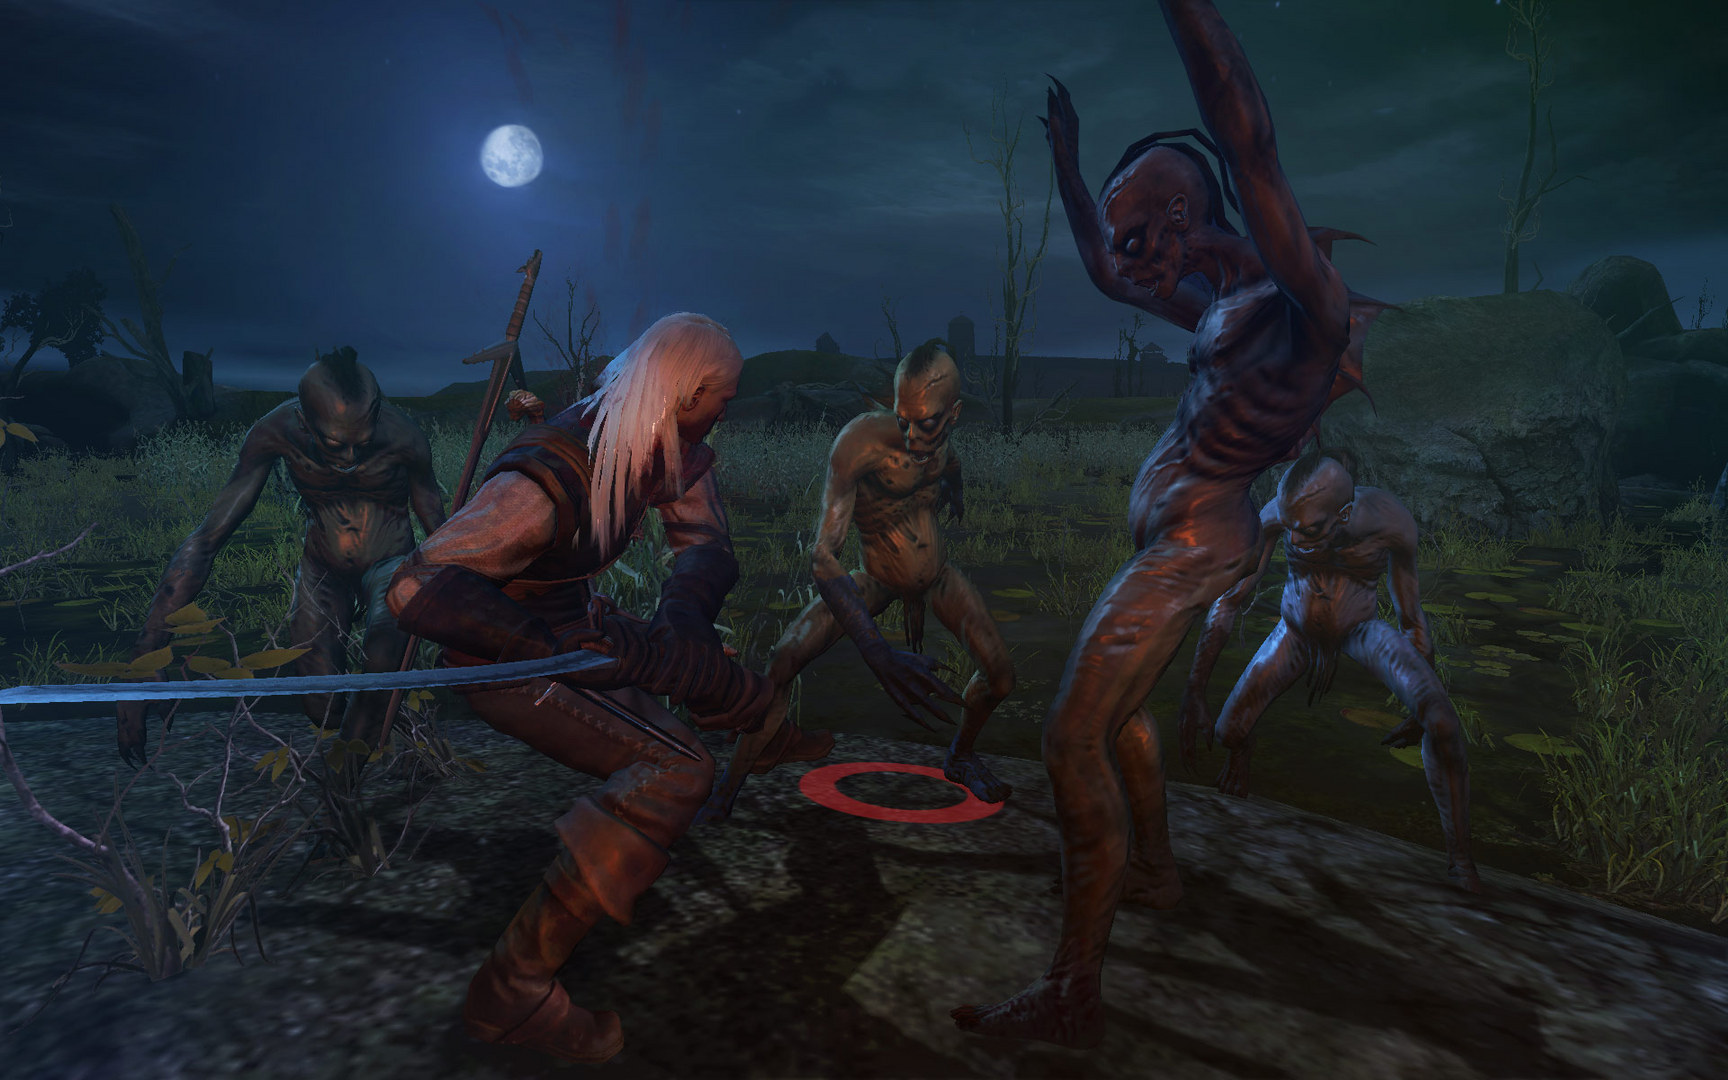 The Witcher: Enhanced Edition screenshot 3